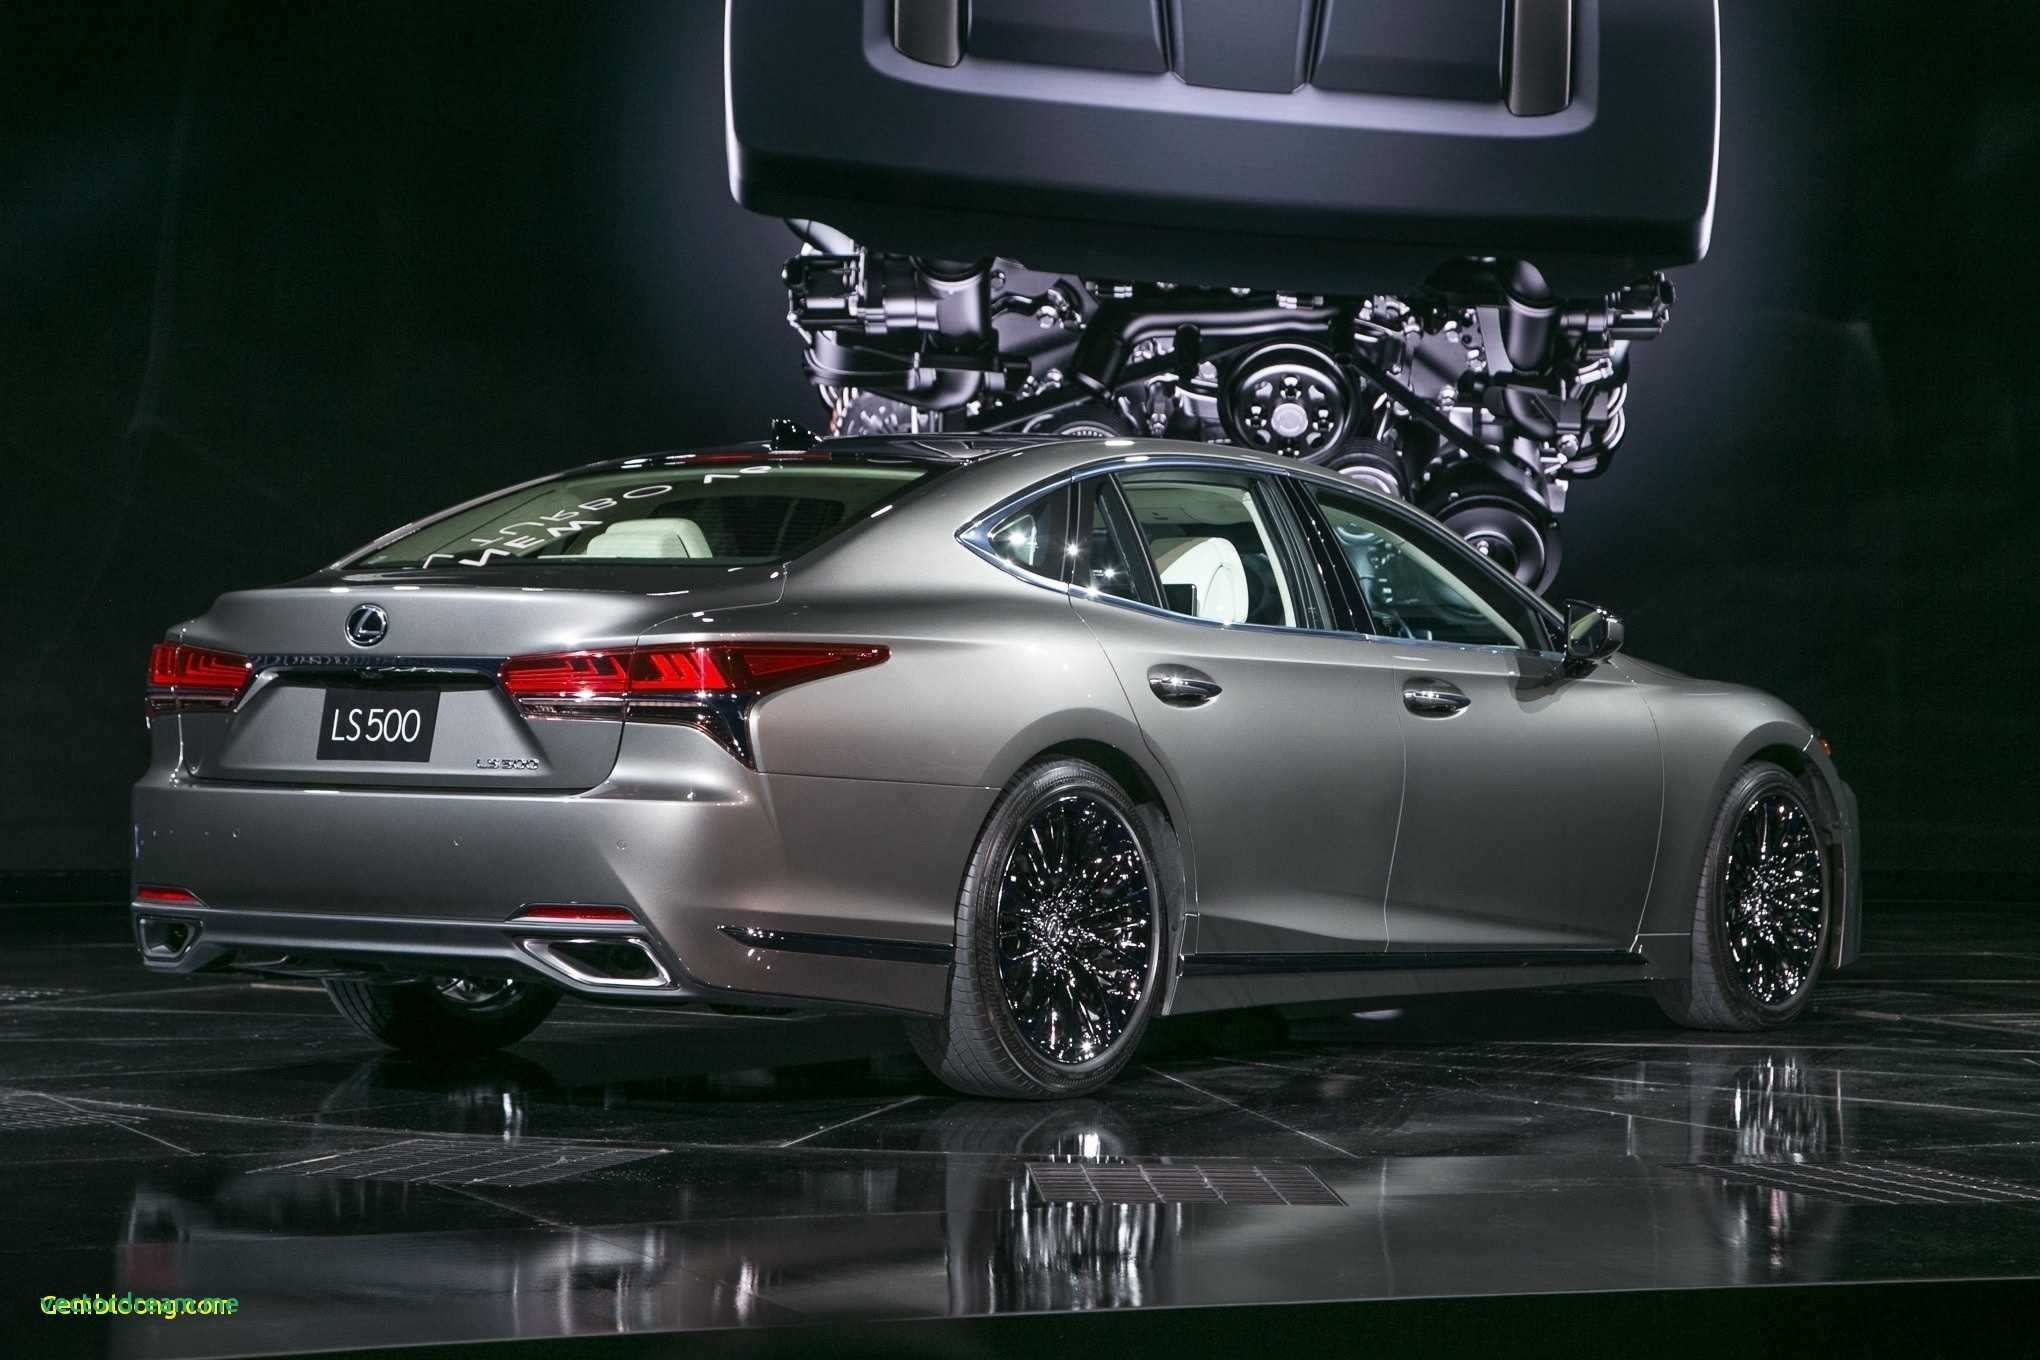 93 Best 2019 Lexus Ls 460 Release Date And Concept